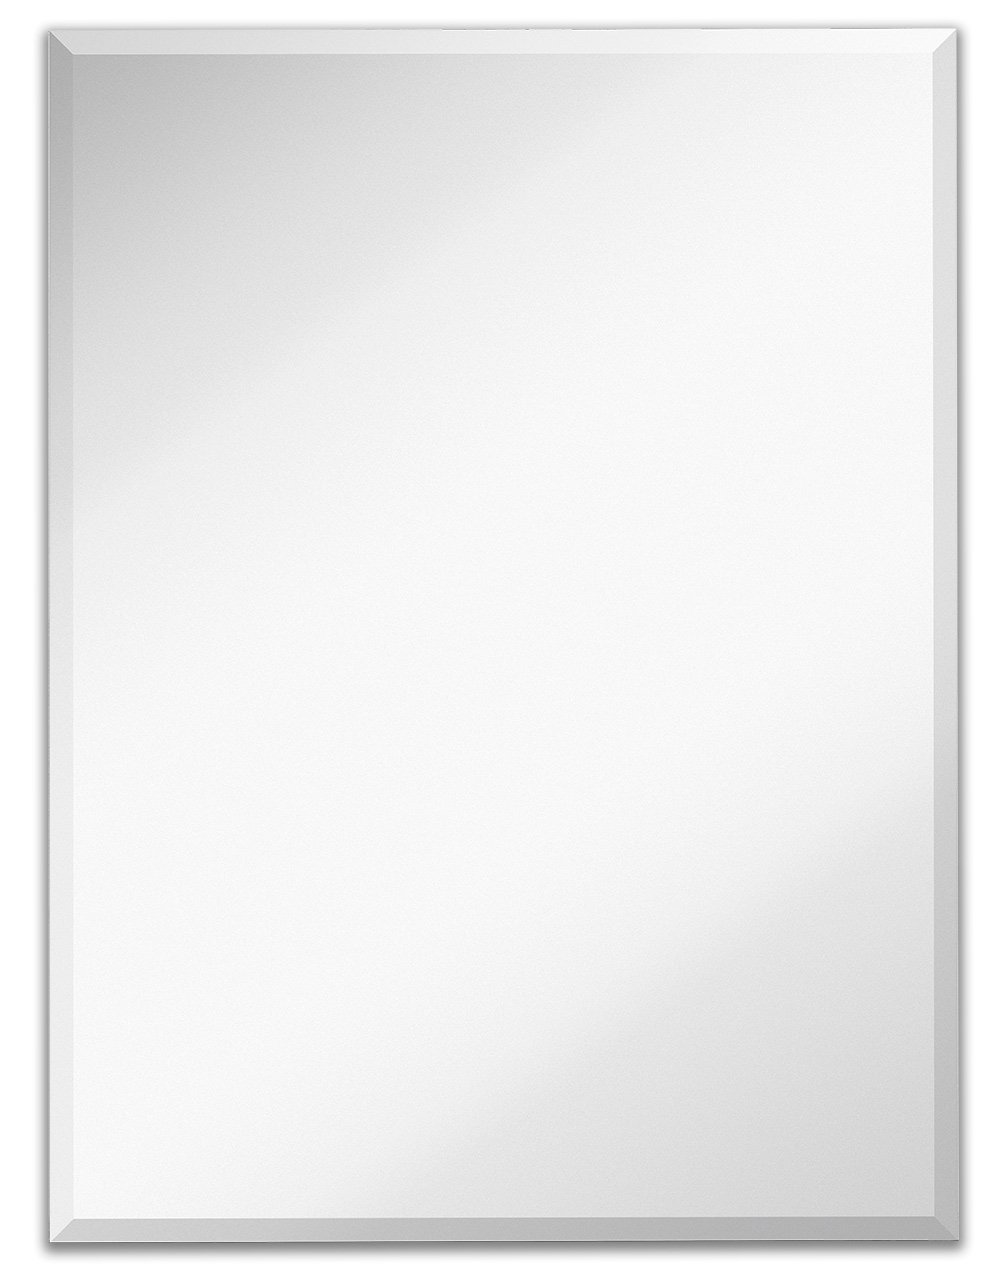 Large Simple Rectangular Streamlined 1 Inch Beveled Wall Mirror | Premium Silver Backed Rectangle Mirrored Glass Panel Vanity, Bedroom, or Bathroom Hangs Horizontal & Vertical Frameless (30''W x 40''H) by Hamilton Hills